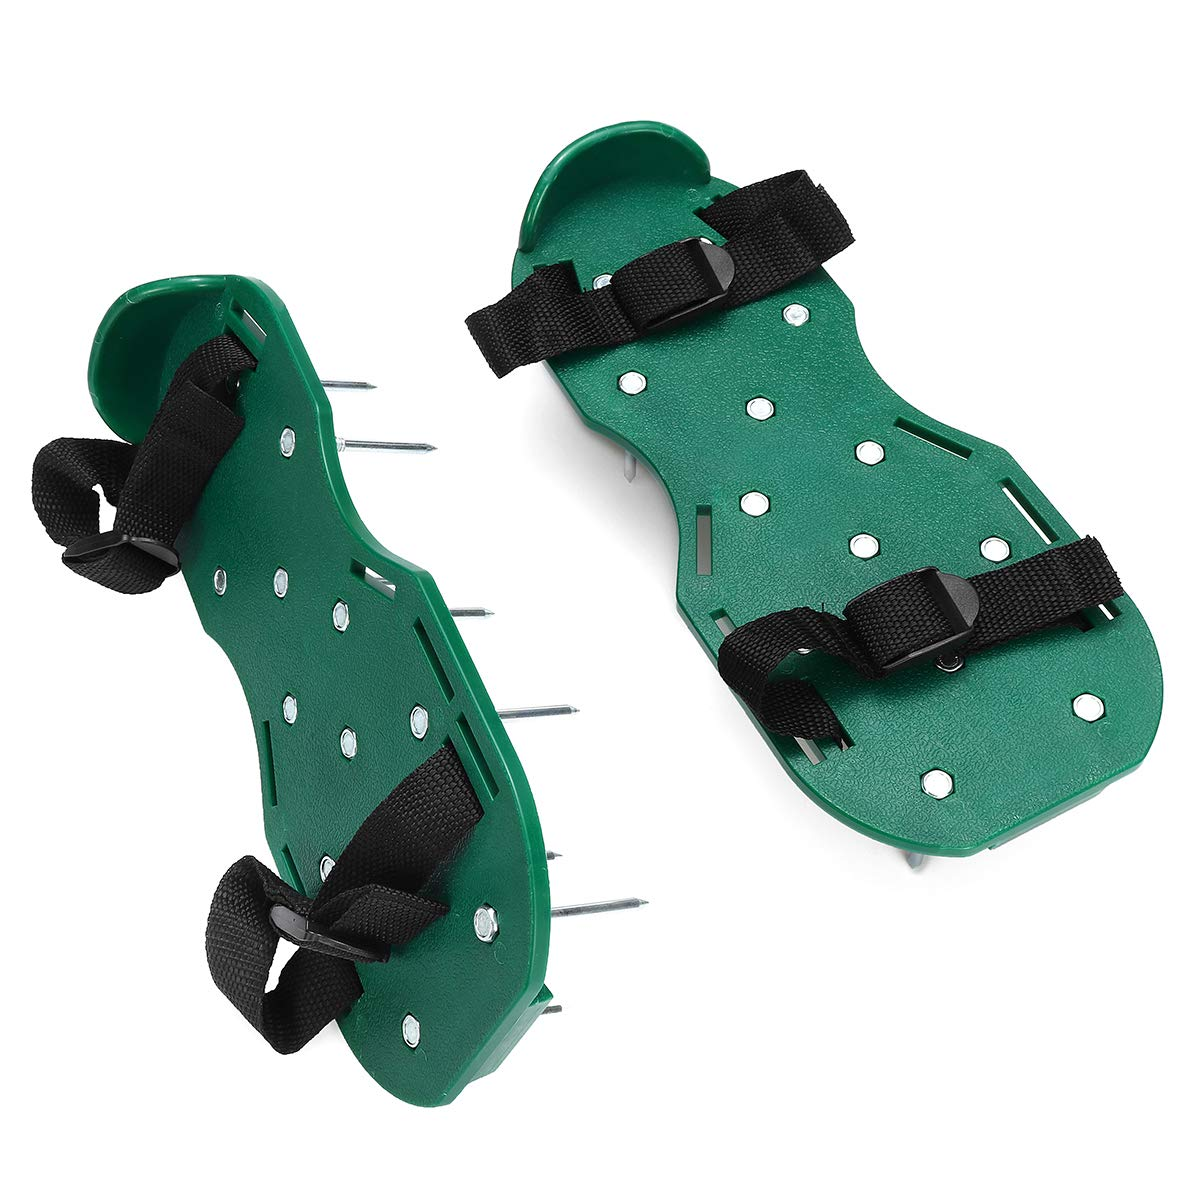 CocinaCo Lawn Aerator Shoes Spiked Sandals Aerating Soil Sandals Adjustable with Accessories